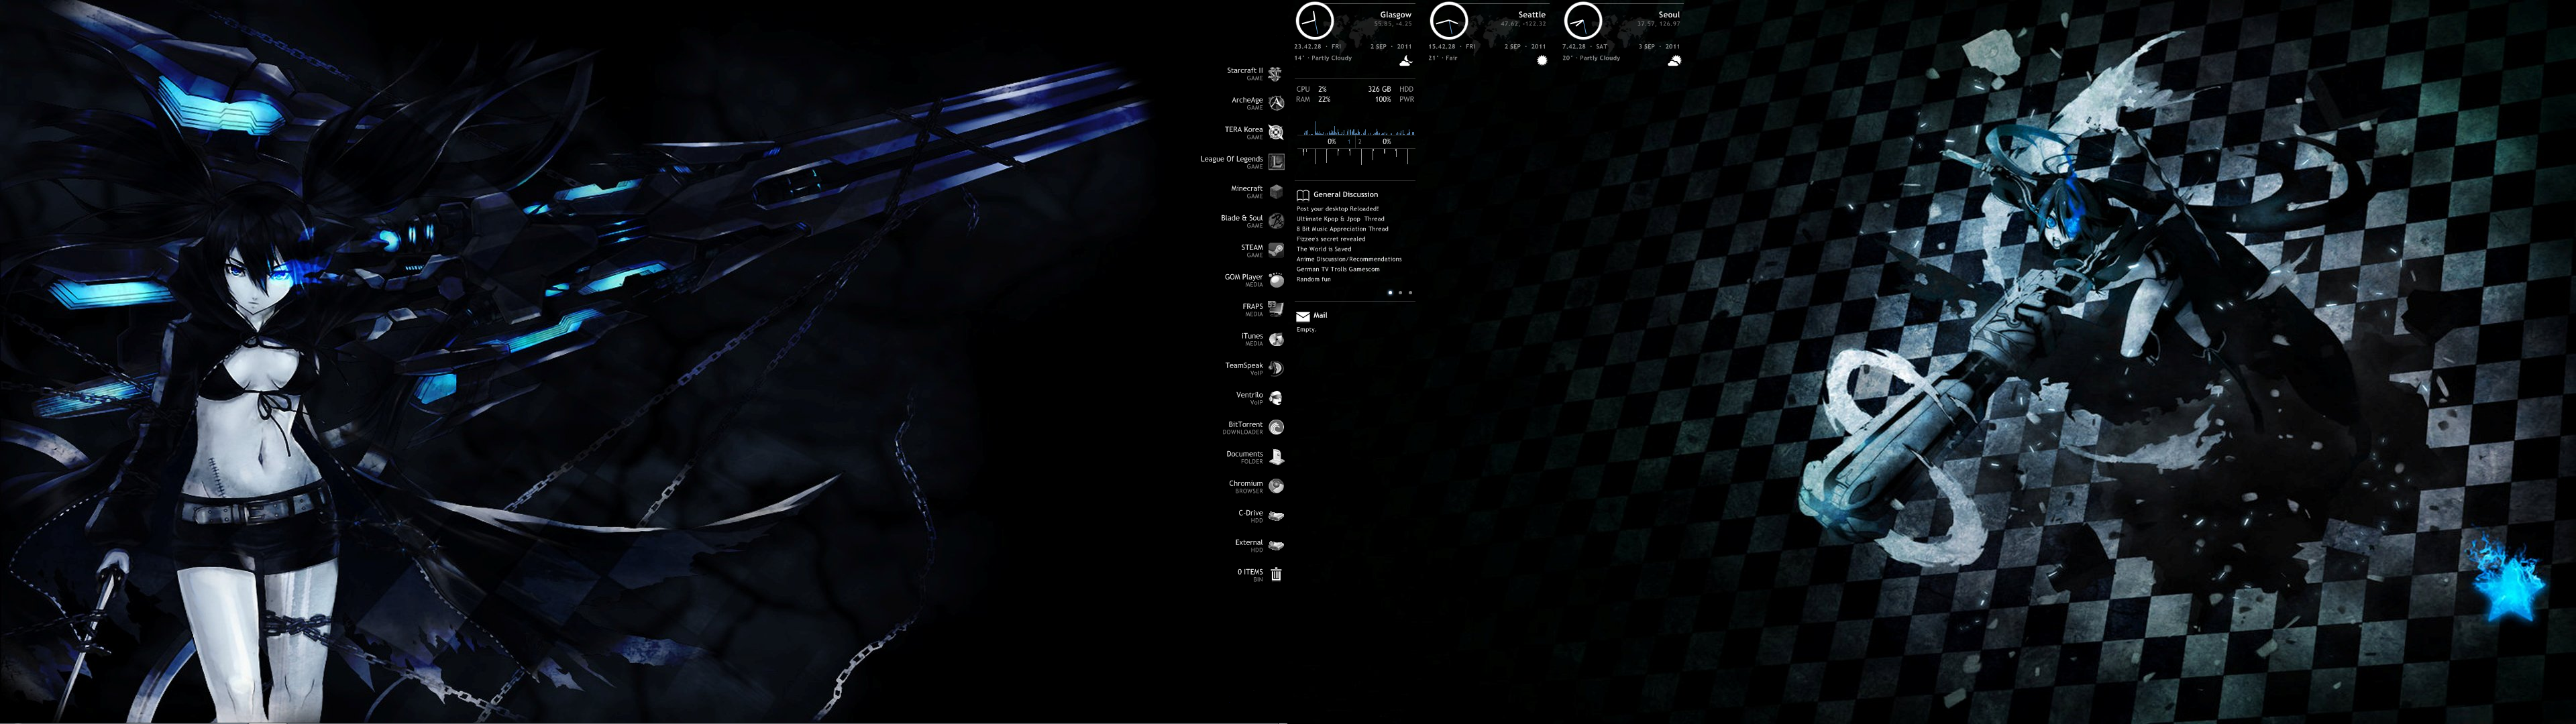 the background black rock shooter over two monitors and the icons down the middle are on the edge of the primary screen so its not just randomly placed on